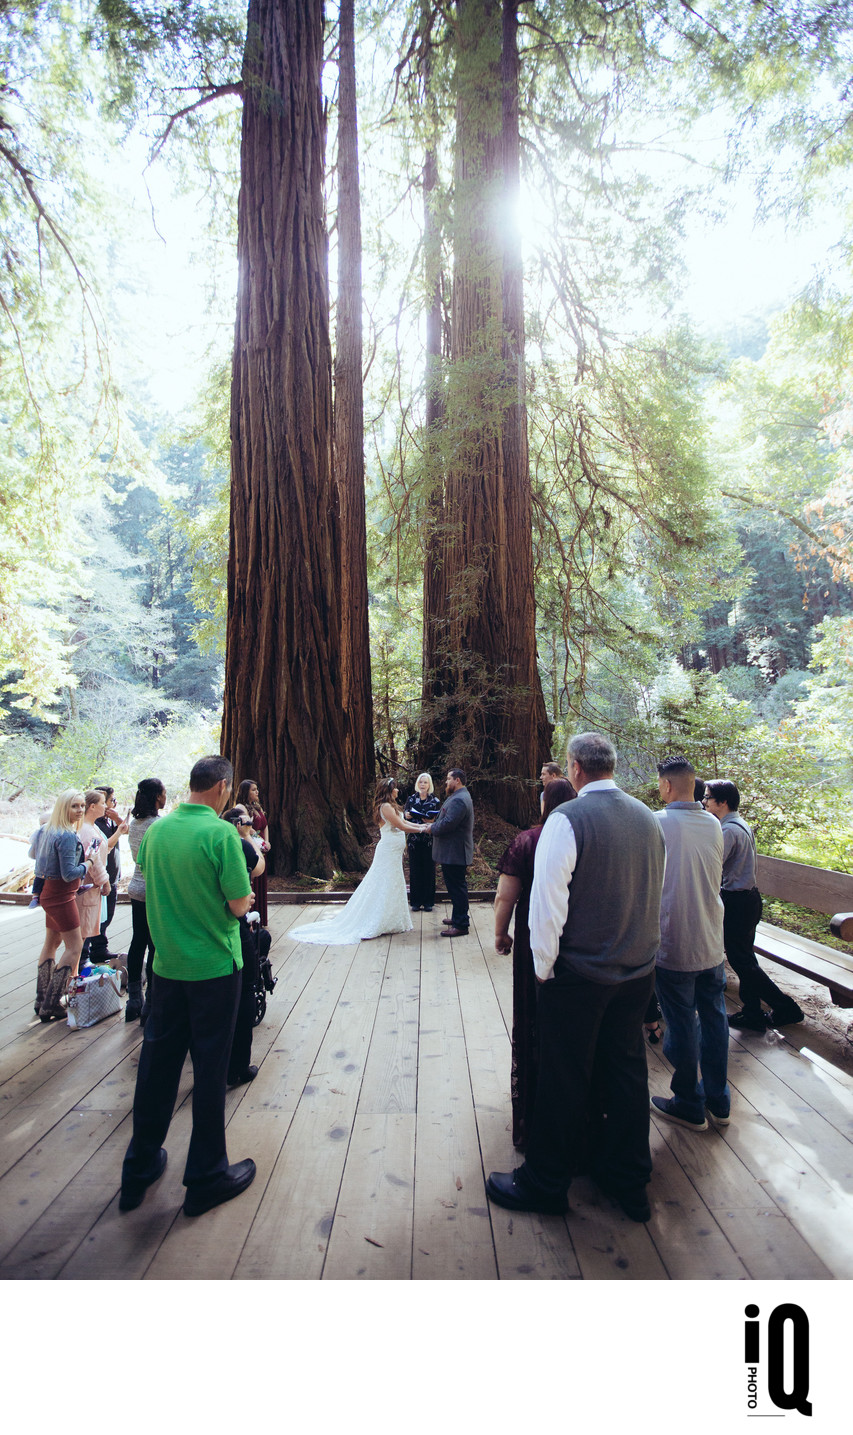 Under the Redwoods at Muir Woods